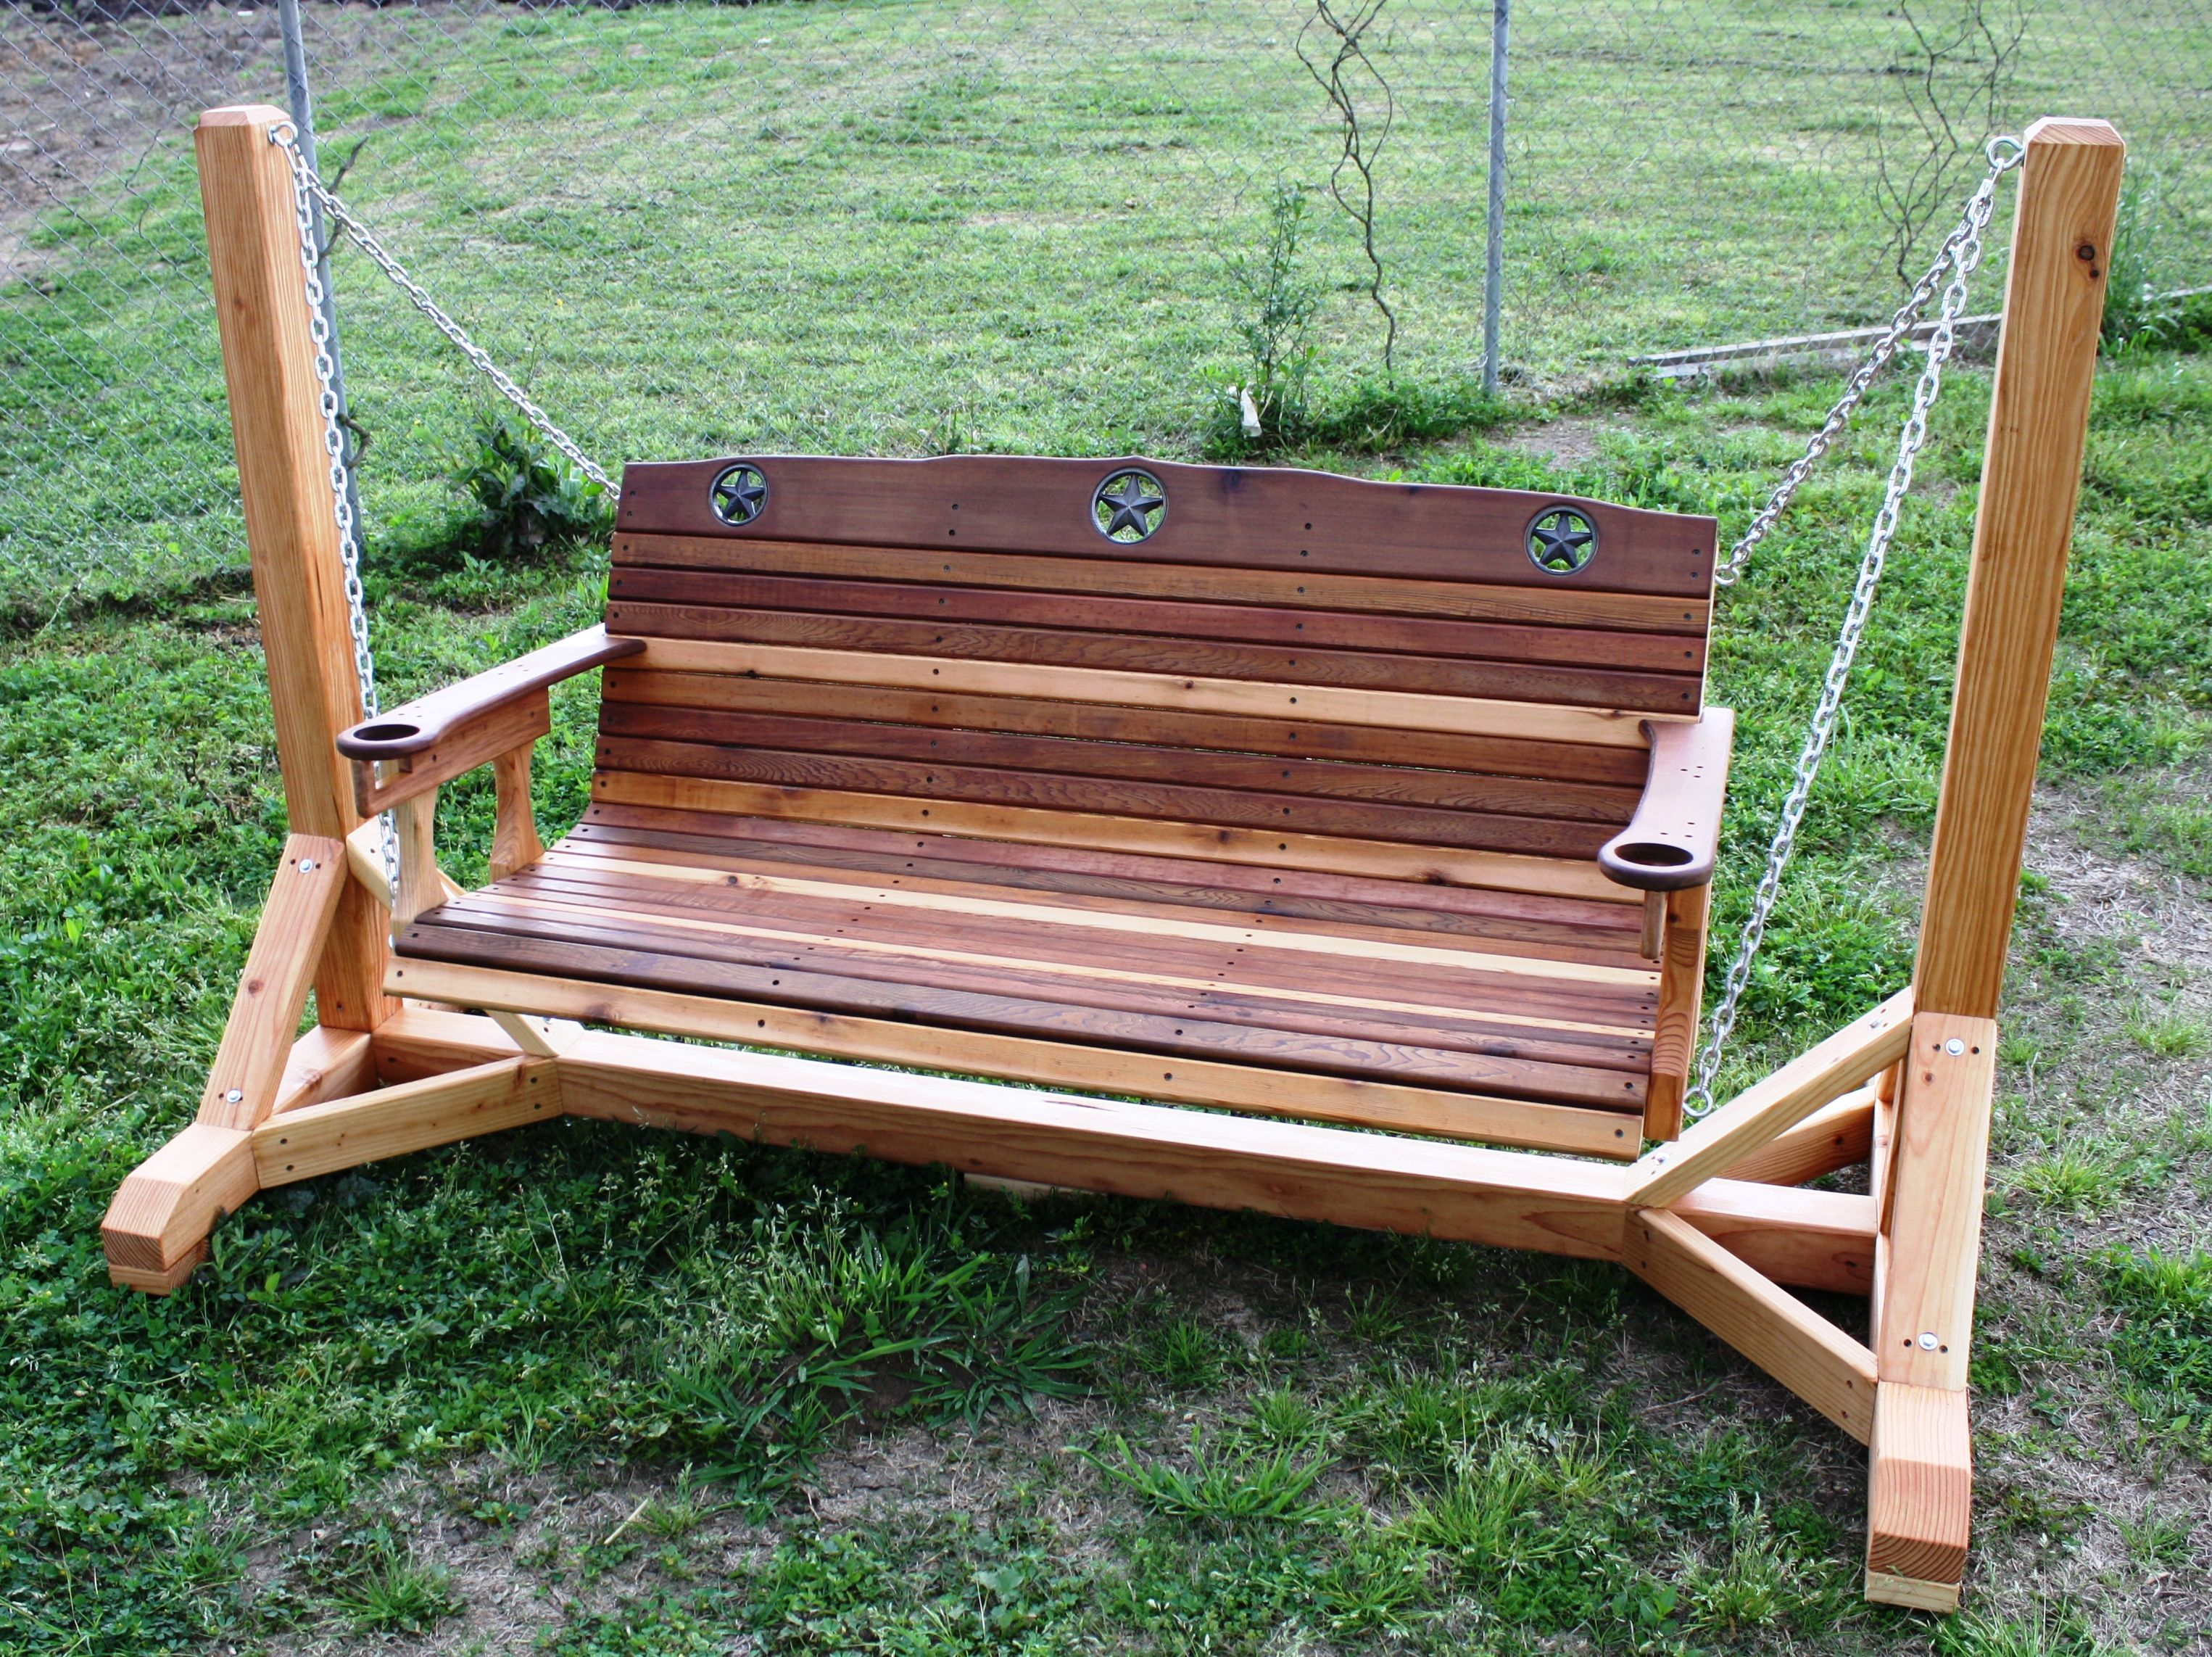 Rustic Star Texas Porch Swing Cedar Creek Woodshop Porch Swing Porch Swing Frame Diy Porch Swing Plans Wooden porch swings with stand